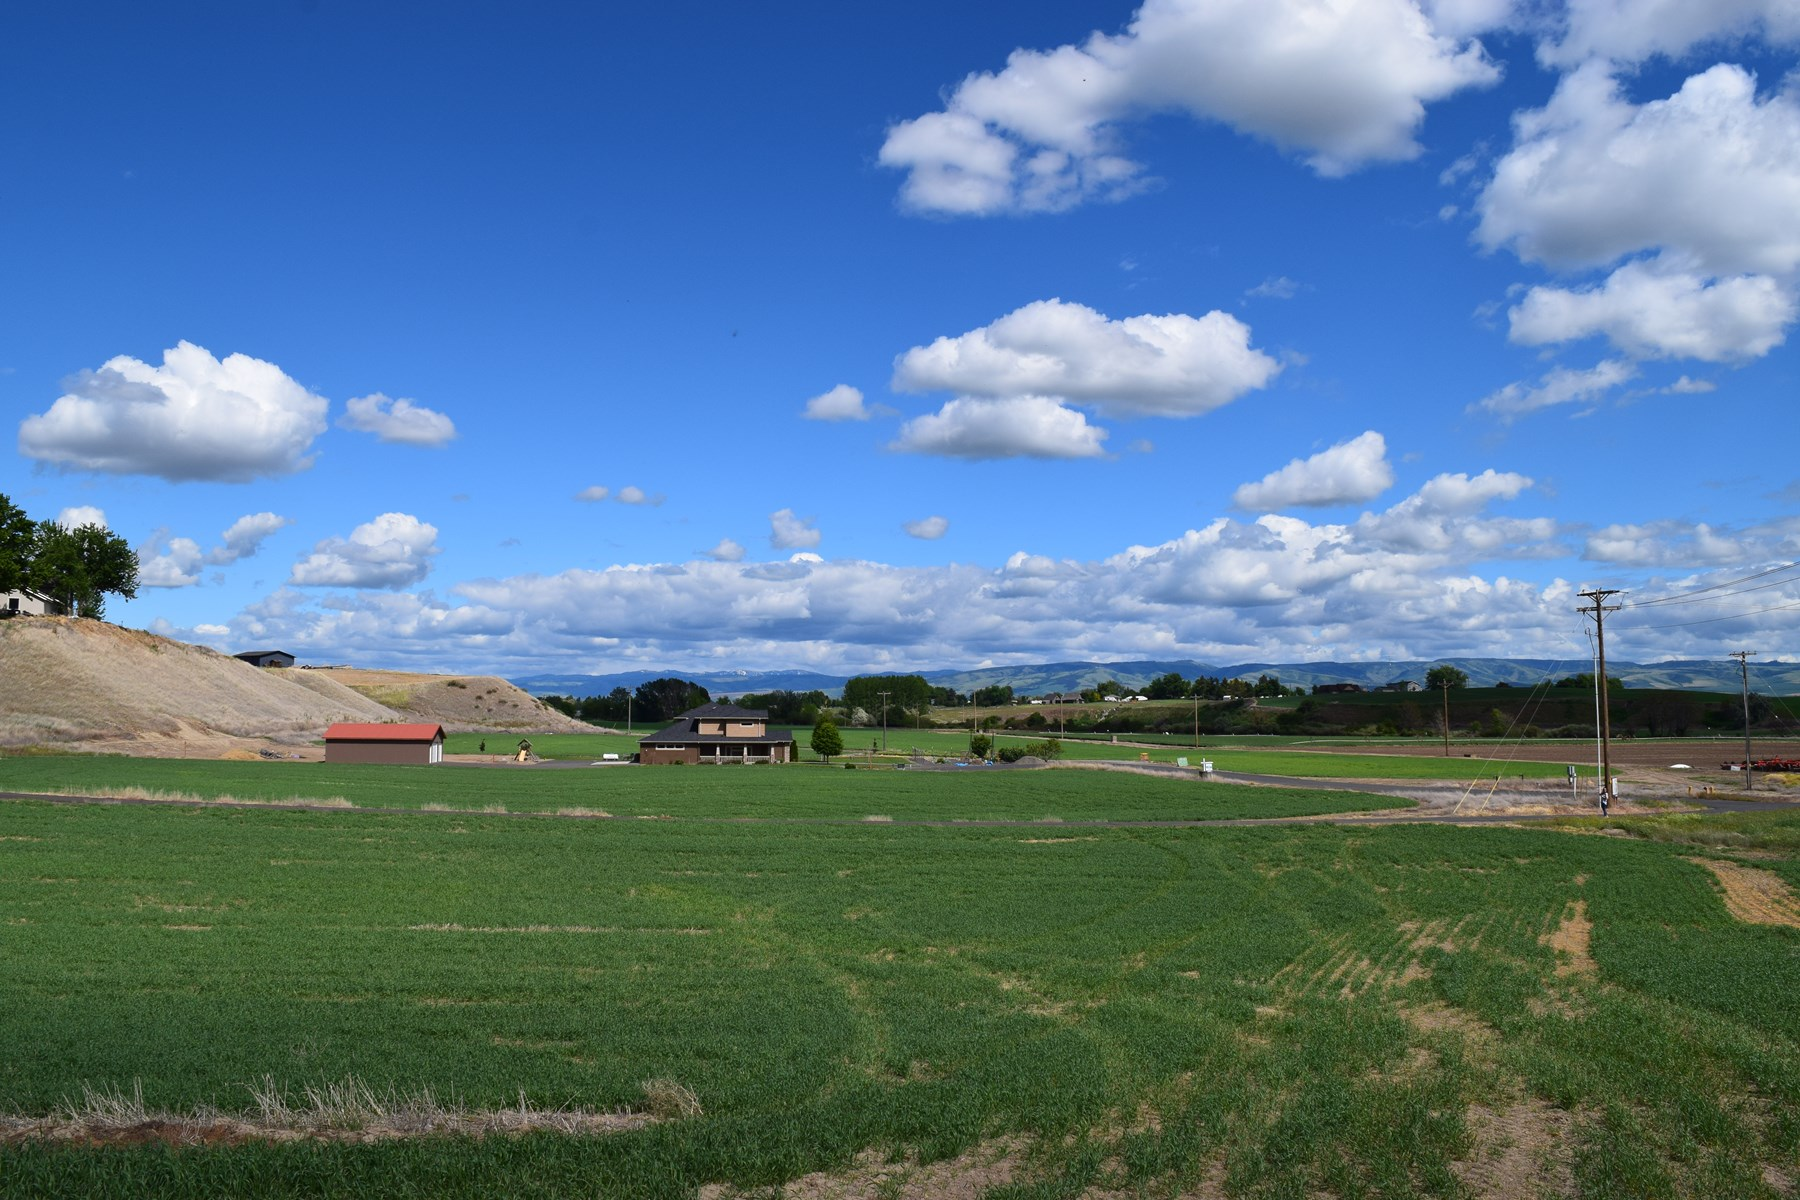 Lot for Sale in Walla Walla, WA, 1,9 to 2,2 Acres